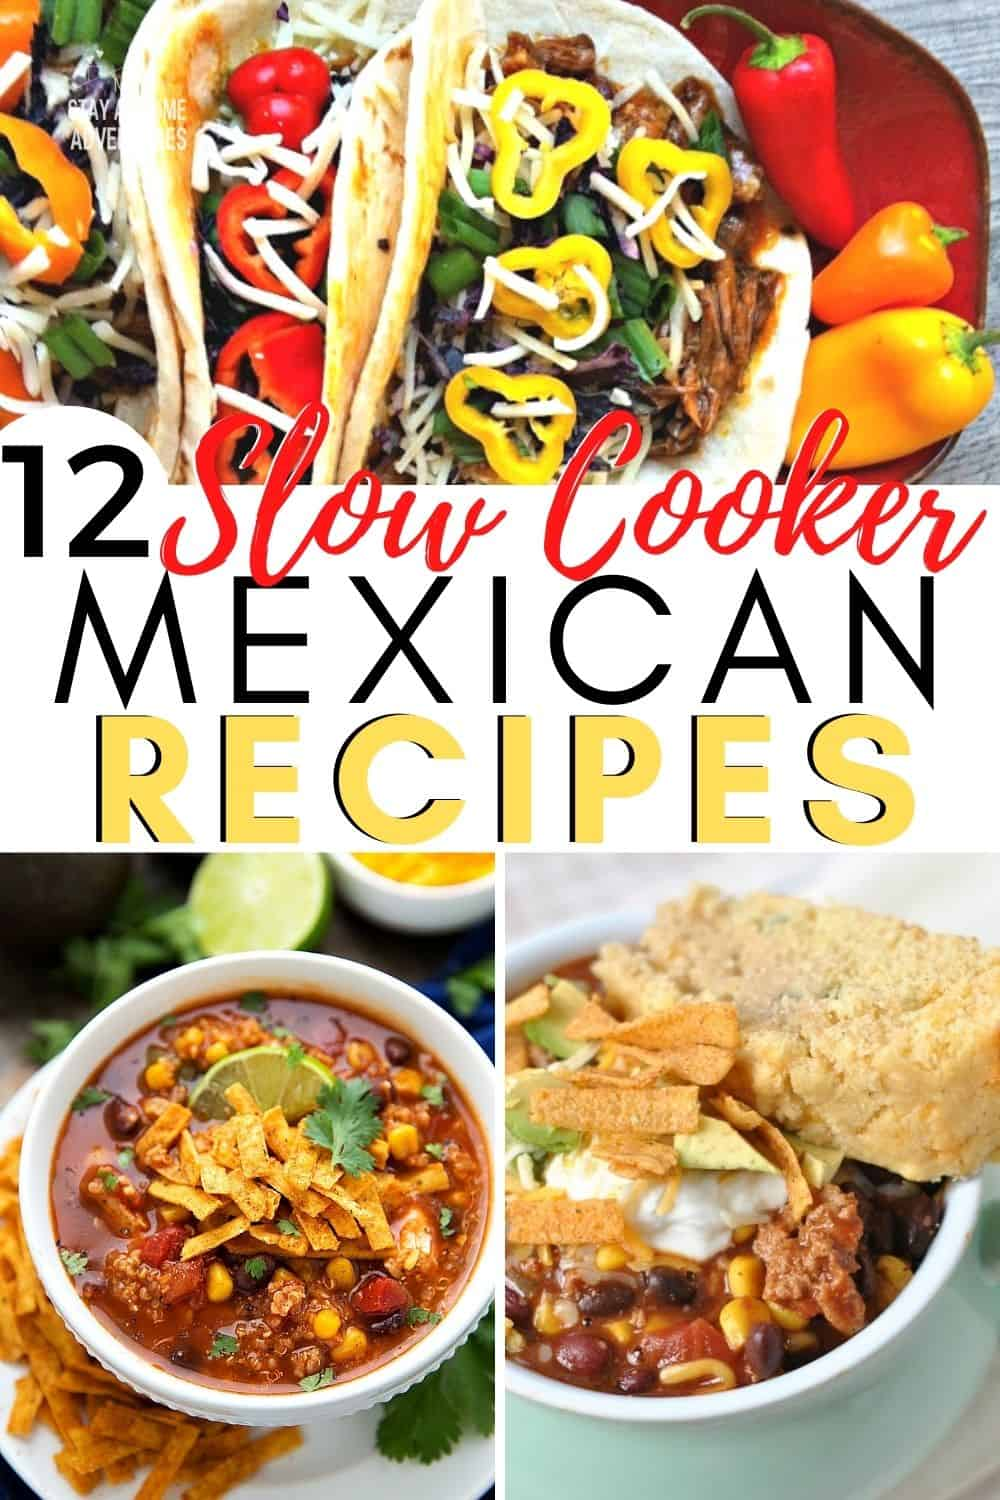 Looking for Mexican recipes to try with your busy family? Check out these mouth-watering slow cooker Mexican recipes for busy families. #slowcooker #mexicanfood via @mystayathome